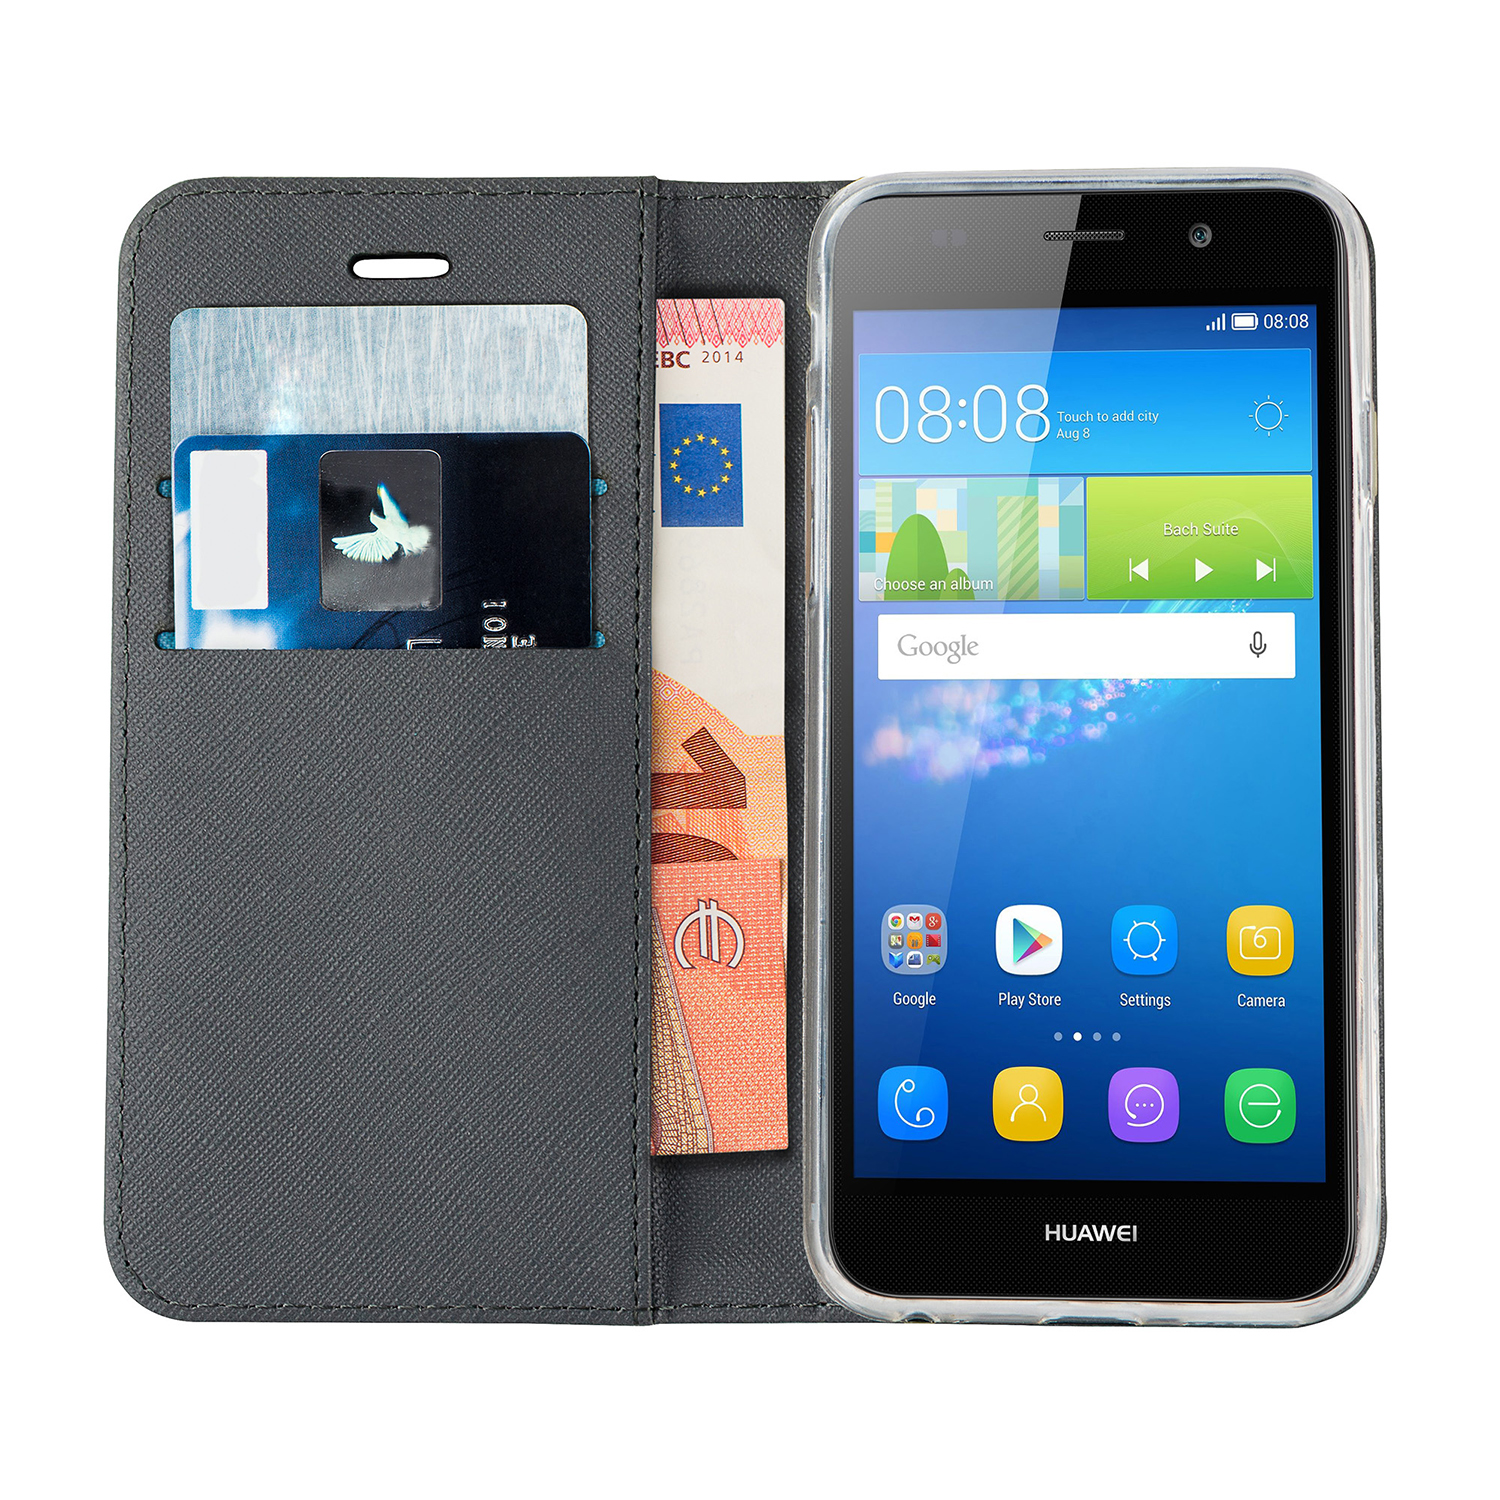 Case Design leather mobile phone case : Azuri wallet case with magnetic closure - black - for Huawei Y6 - GSM ...